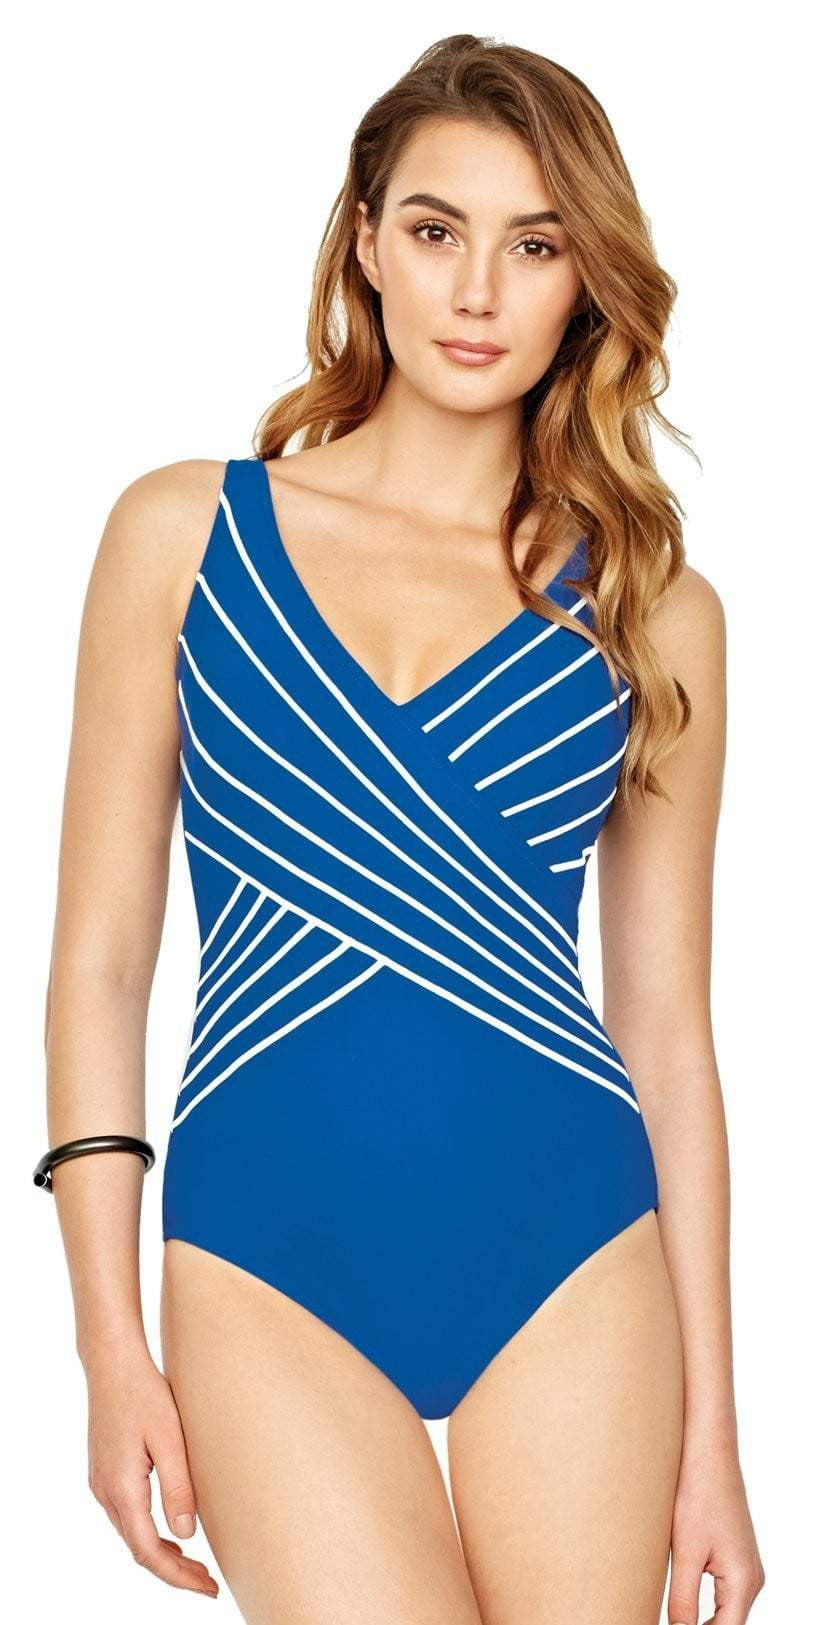 Gottex Embrace Surplice Swimsuit in Deep Blue 18EM-158-407: